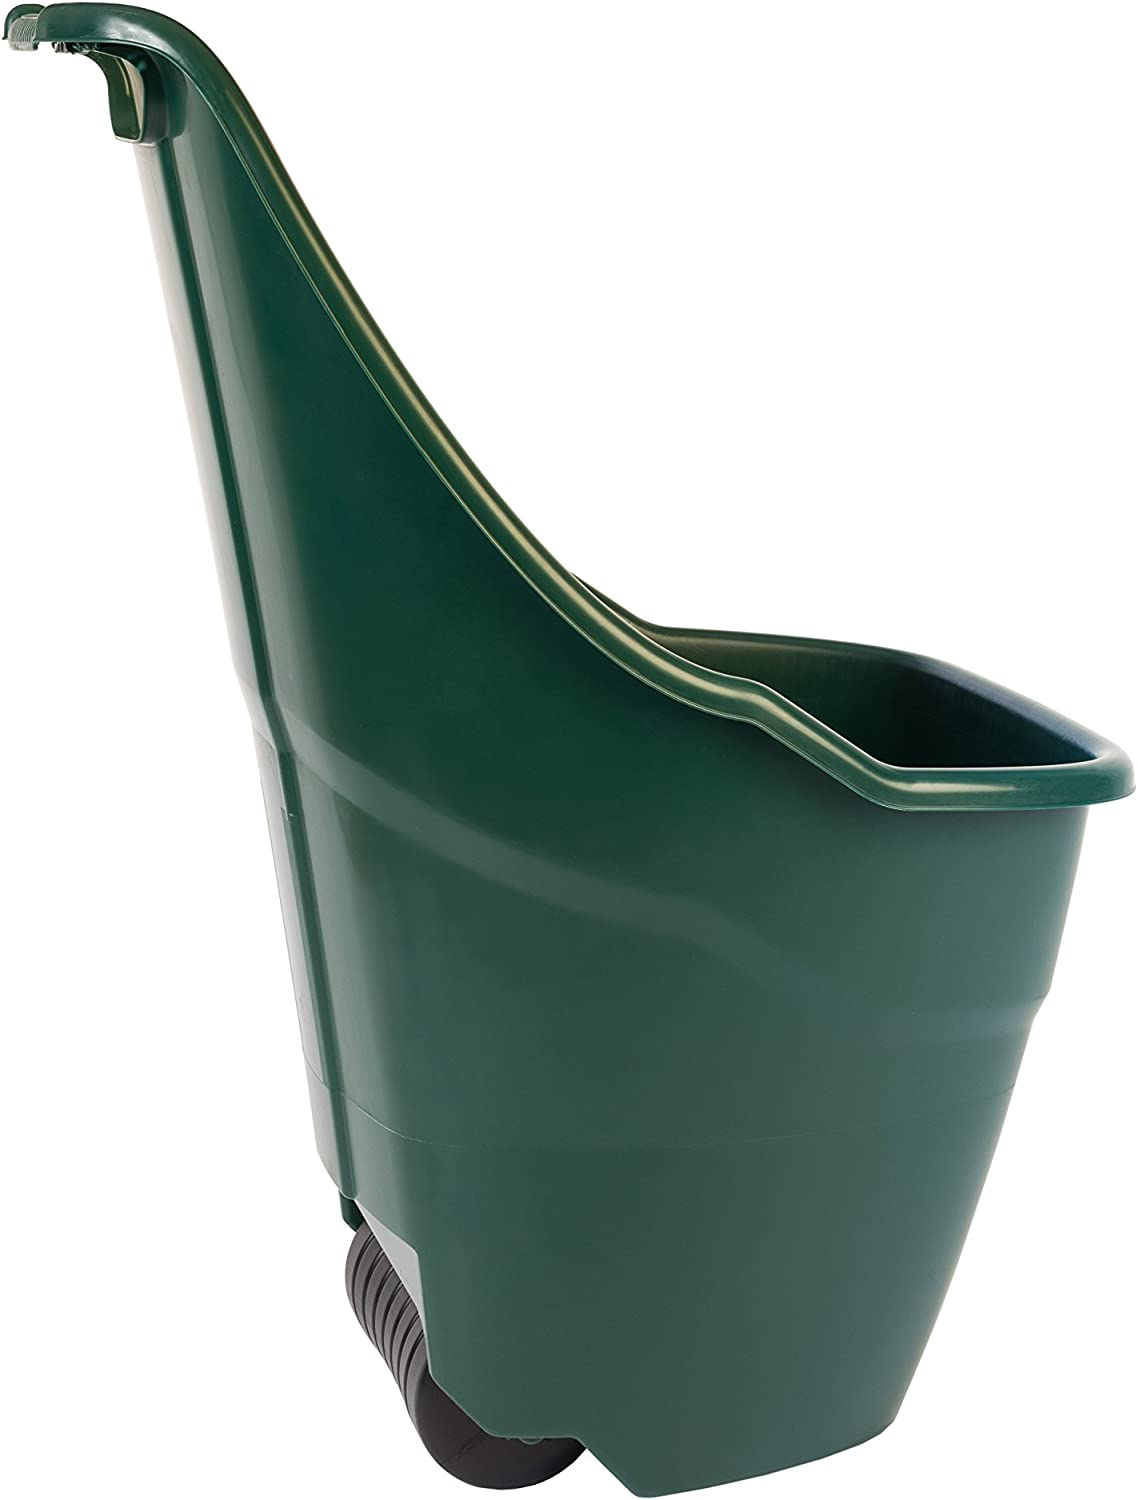 Ward GN068 - Kart de jardín (60 x 47 x 85 cm), Color Verde: Amazon ...